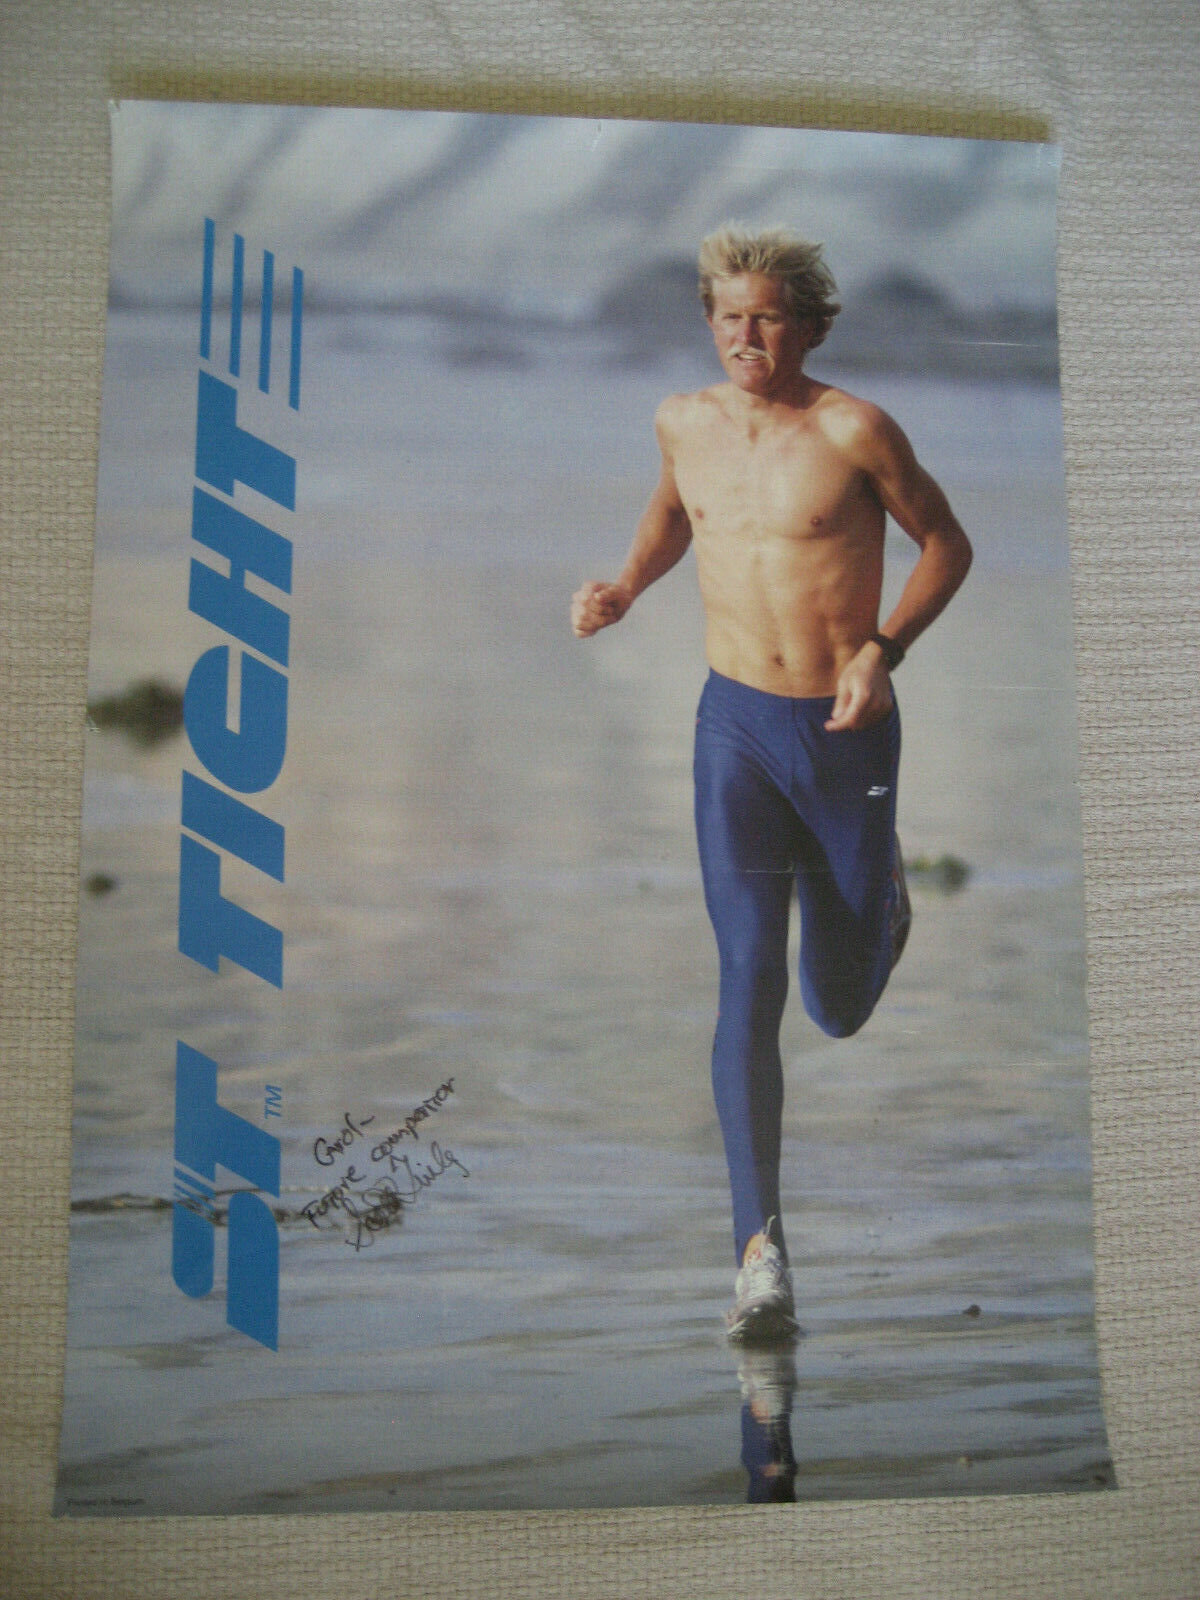 S.T. TIGHT Futove Competition Race Signed by Scott Tinley TRIATHLON POSTER VTG